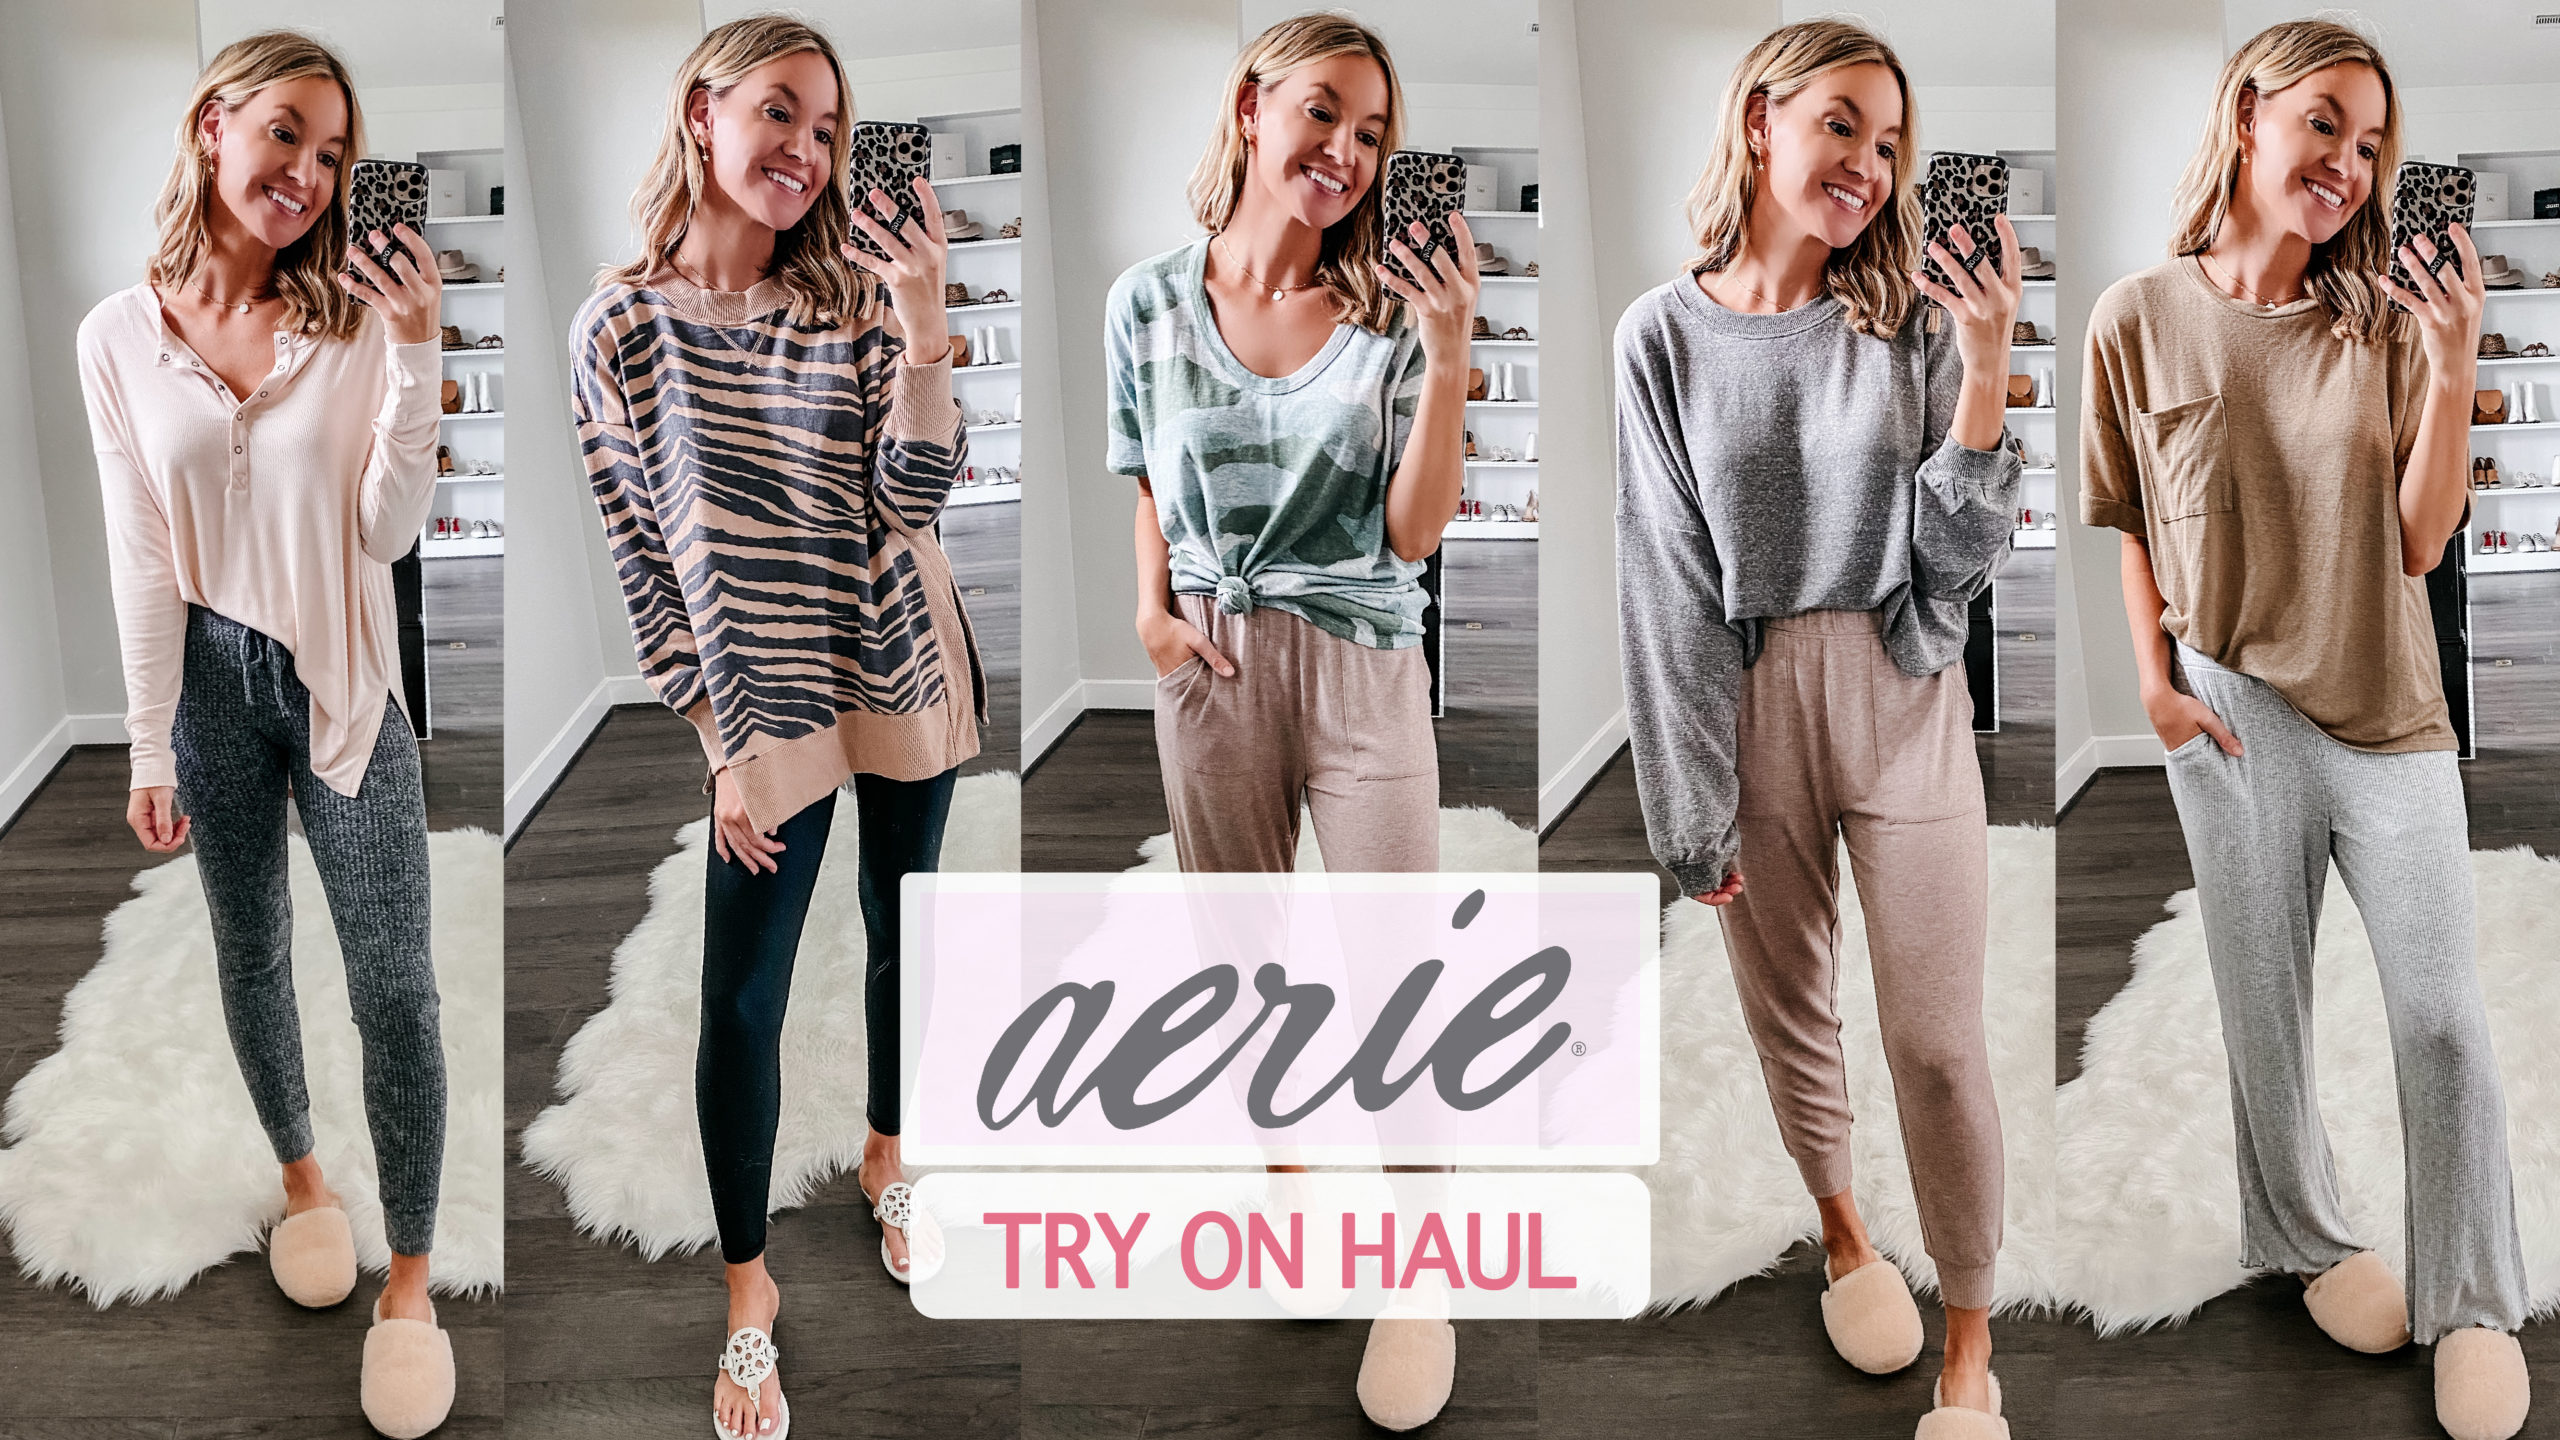 Aerie Try On Haul